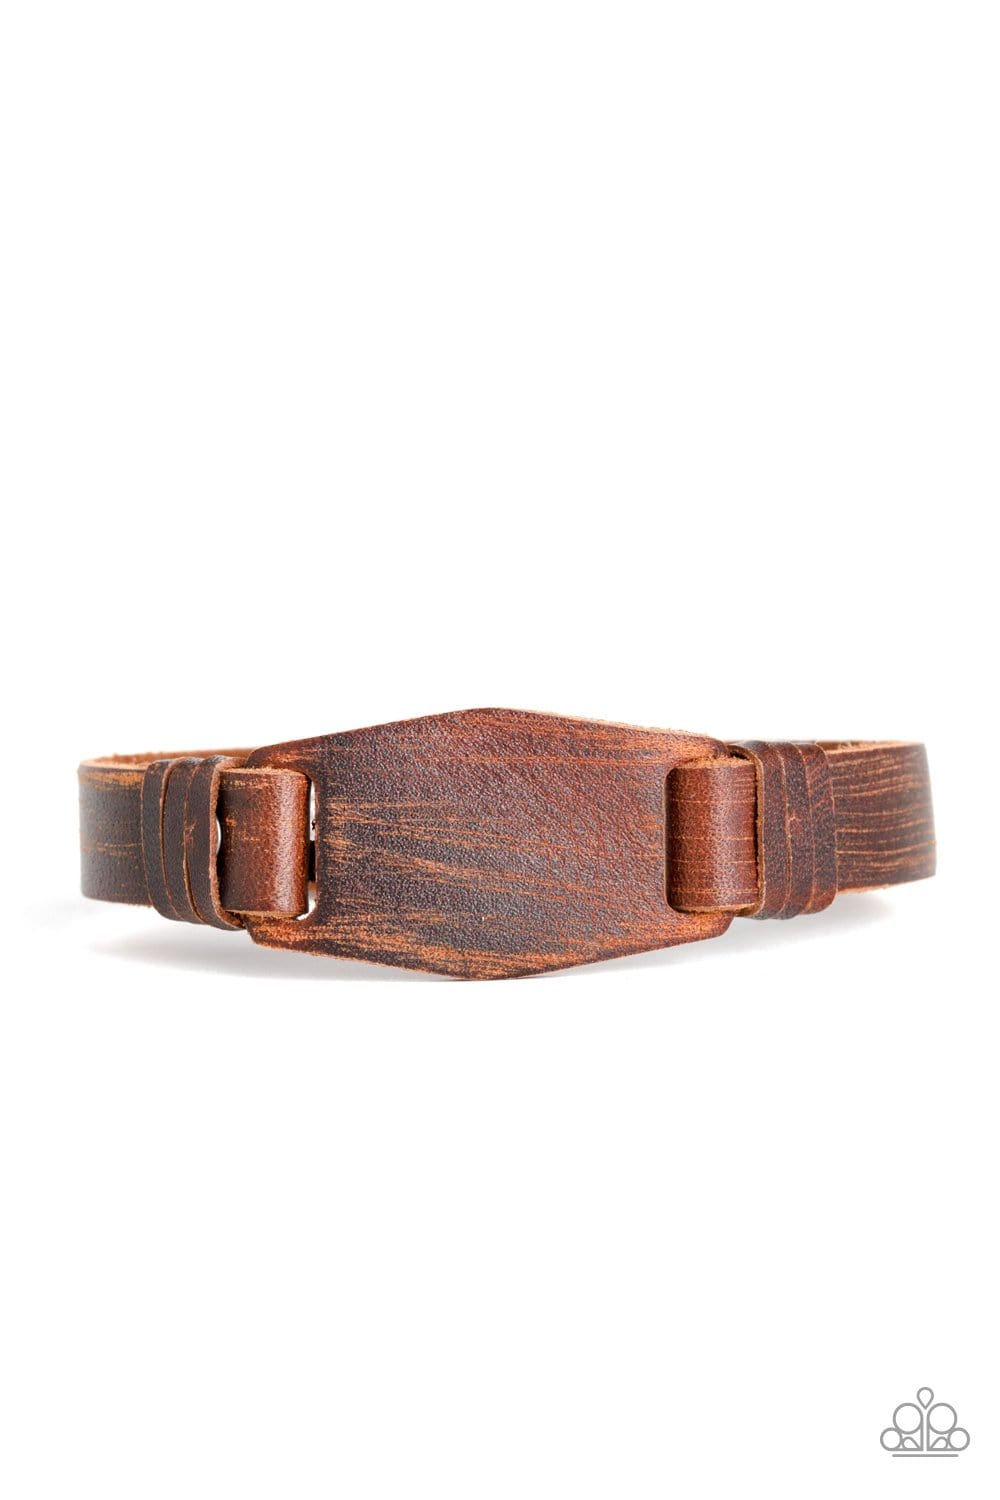 Paparazzi: Plainly Pioneer - Brown Leather Bracelet - Jewels N' Thingz Boutique